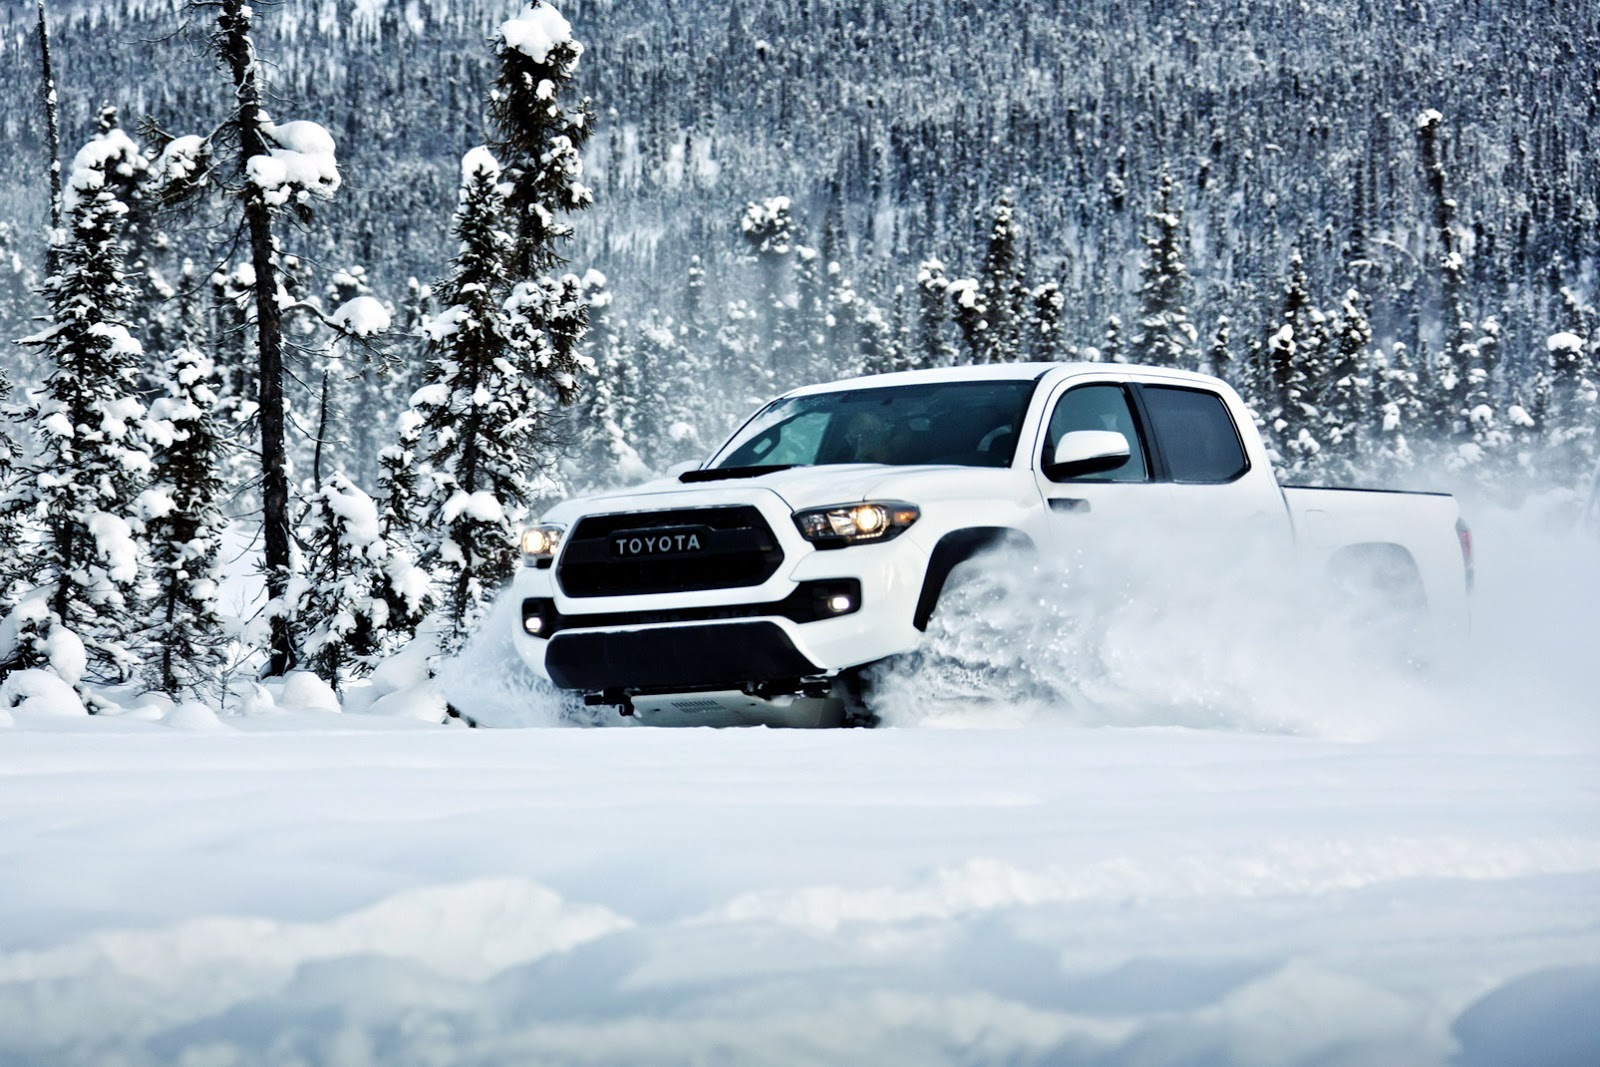 2017 Toyota Tacoma Trd Off Road >> 2017 Toyota Tacoma TRD Pro Is a Small but Extreme Off-Road Pickup - autoevolution